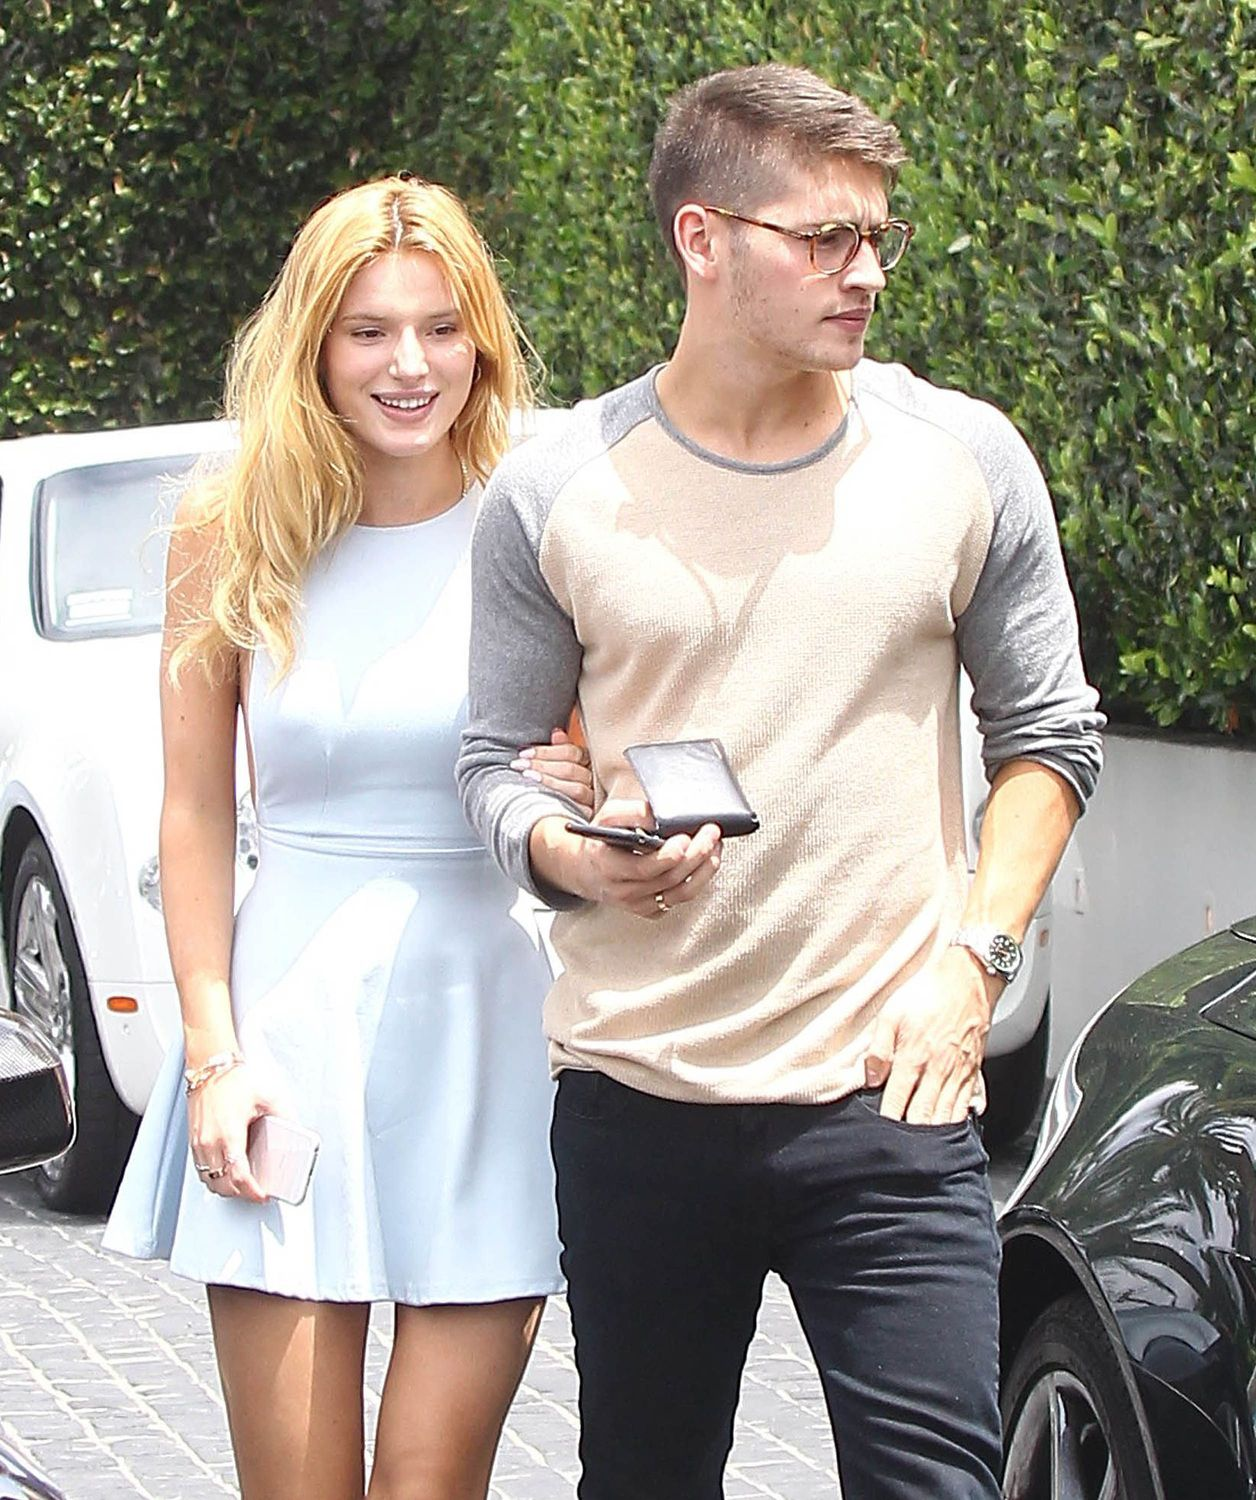 Bella Thorne Braless 8 TheFappening.nu